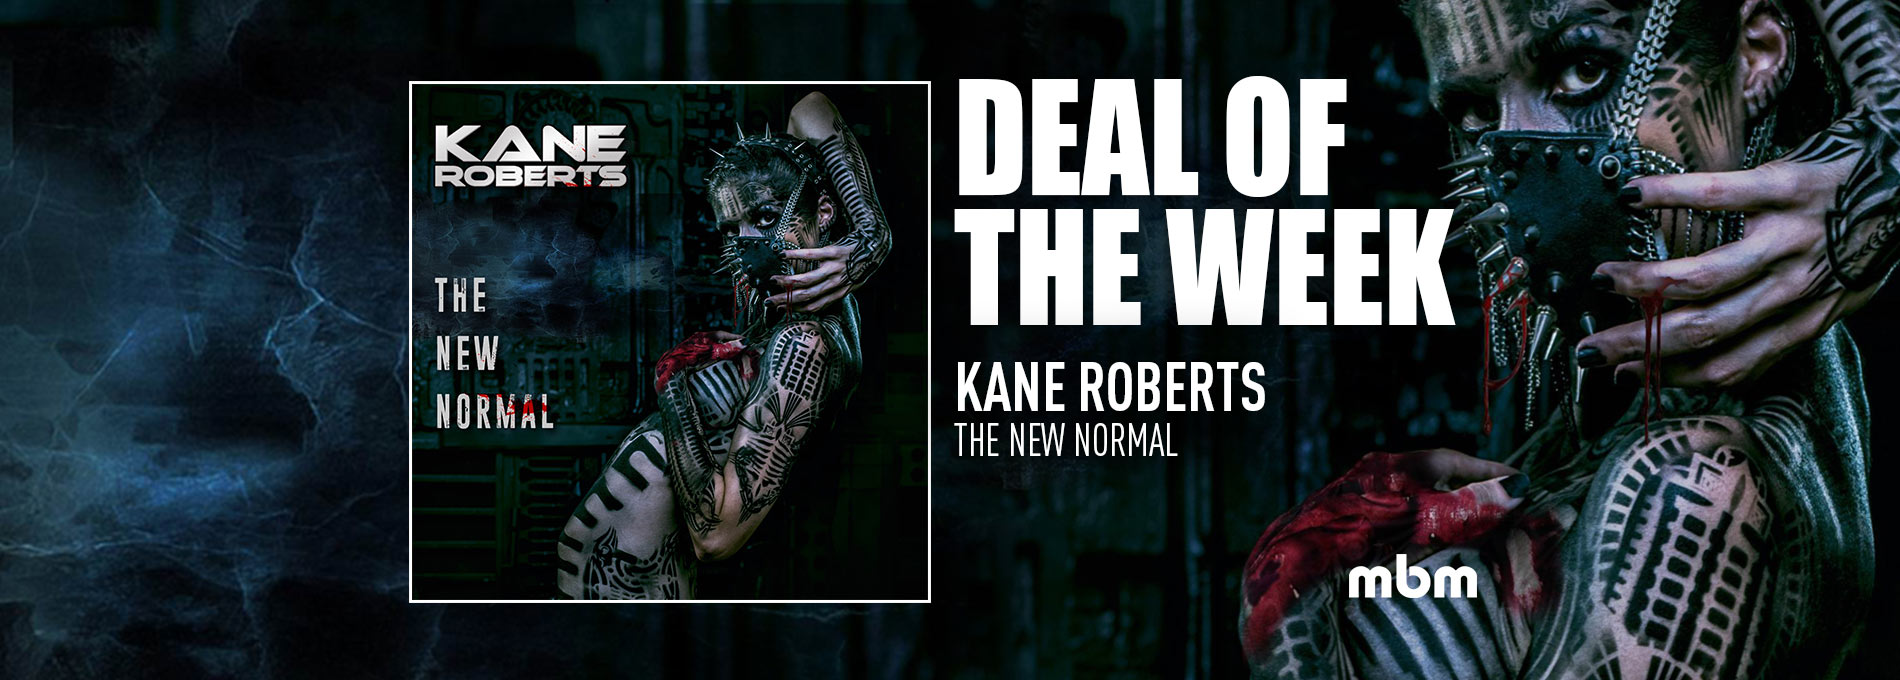 Deal Of The Week: KANE ROBERTS - The New Normal